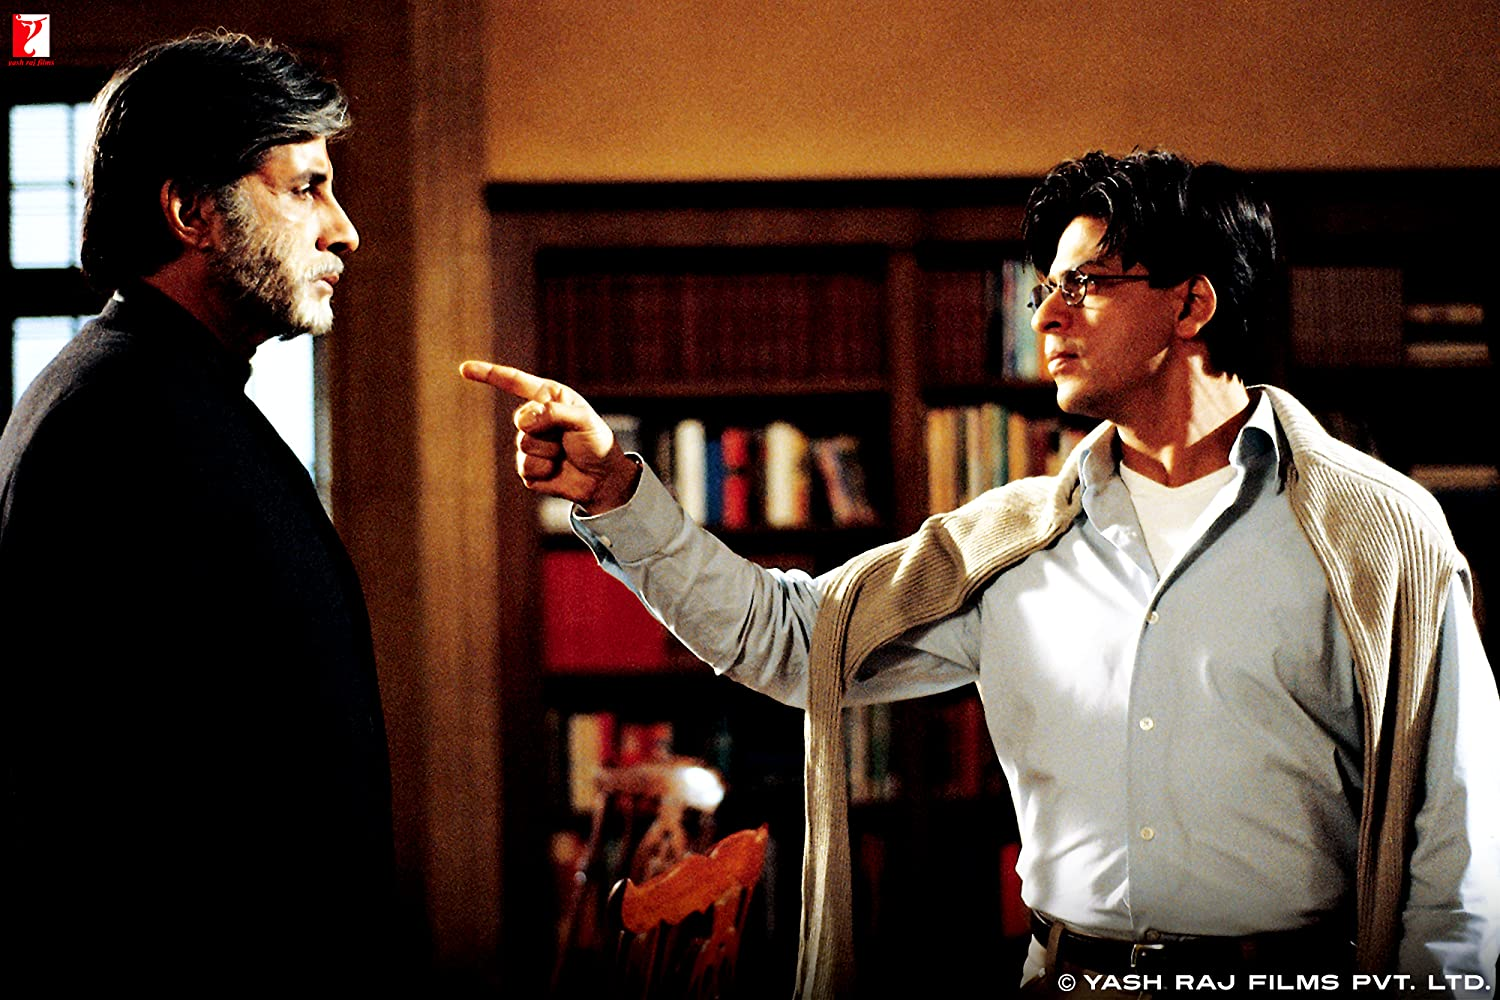 Our 16 Favorite Shah Rukh Khan Movie Quotes